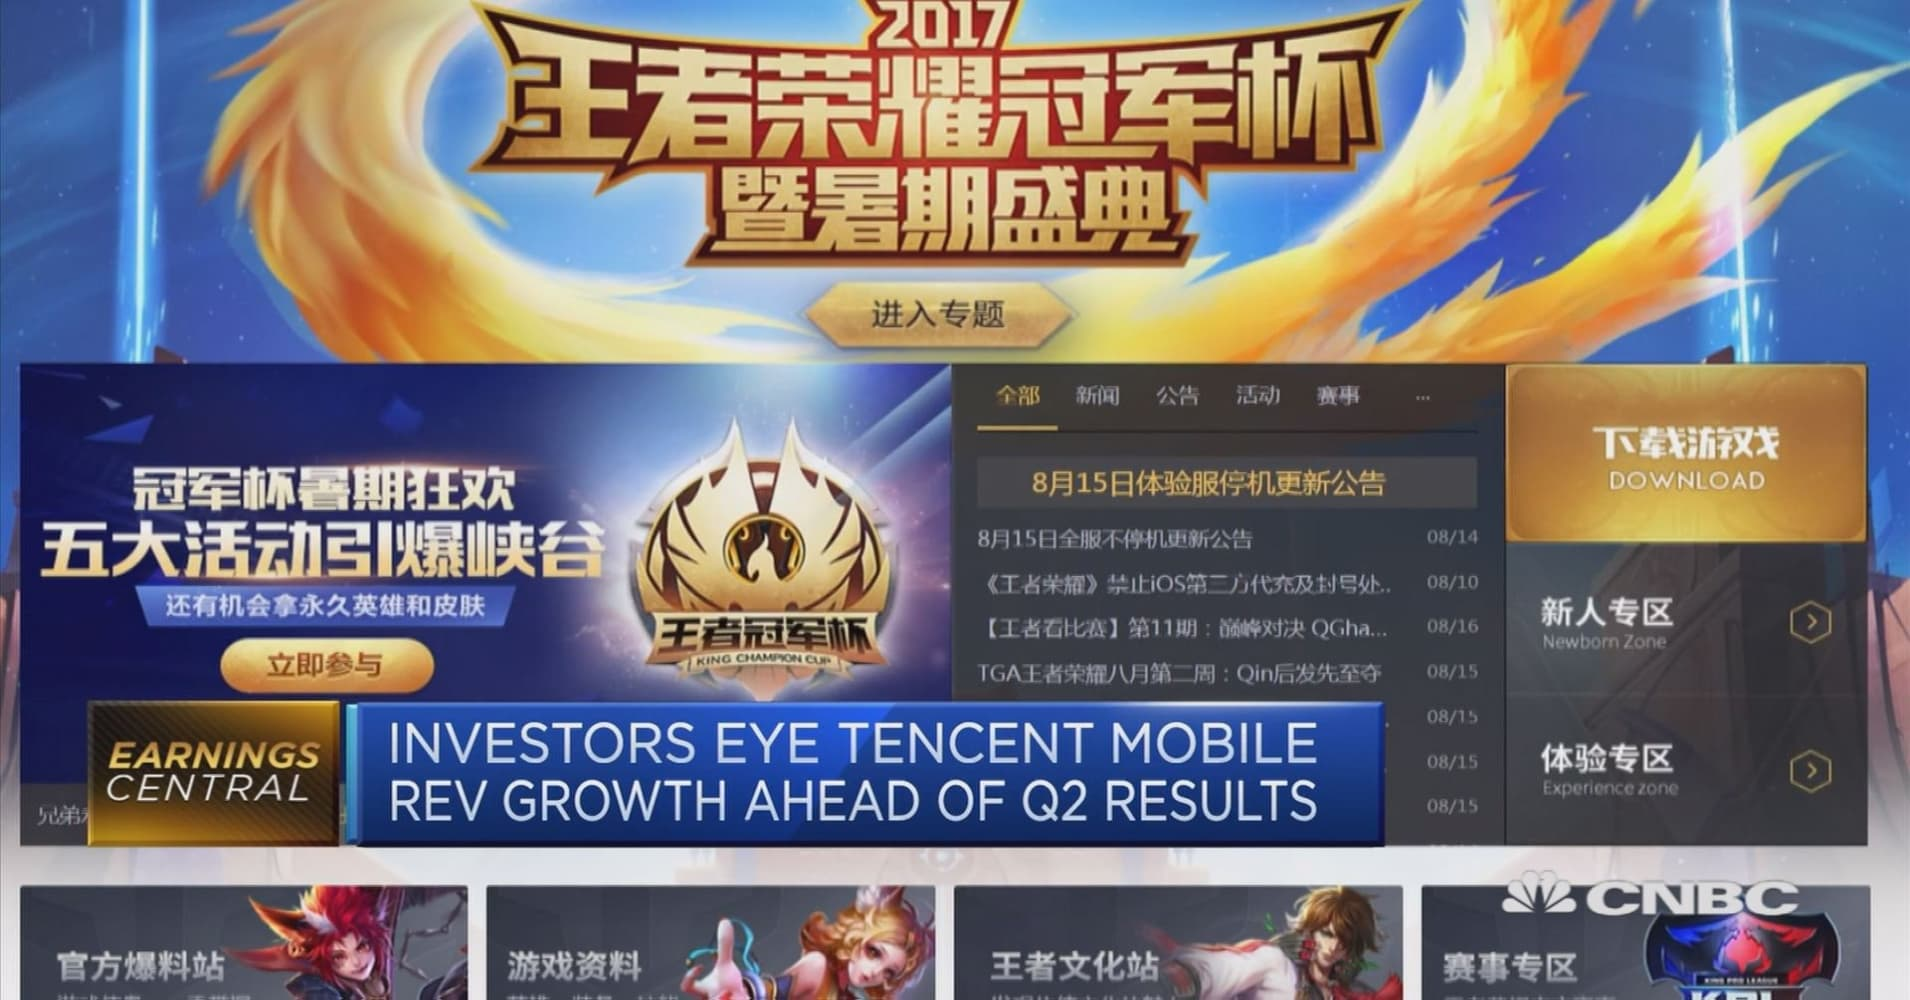 Chinese tech firms overtaking some US giants in terms of apps: Pro